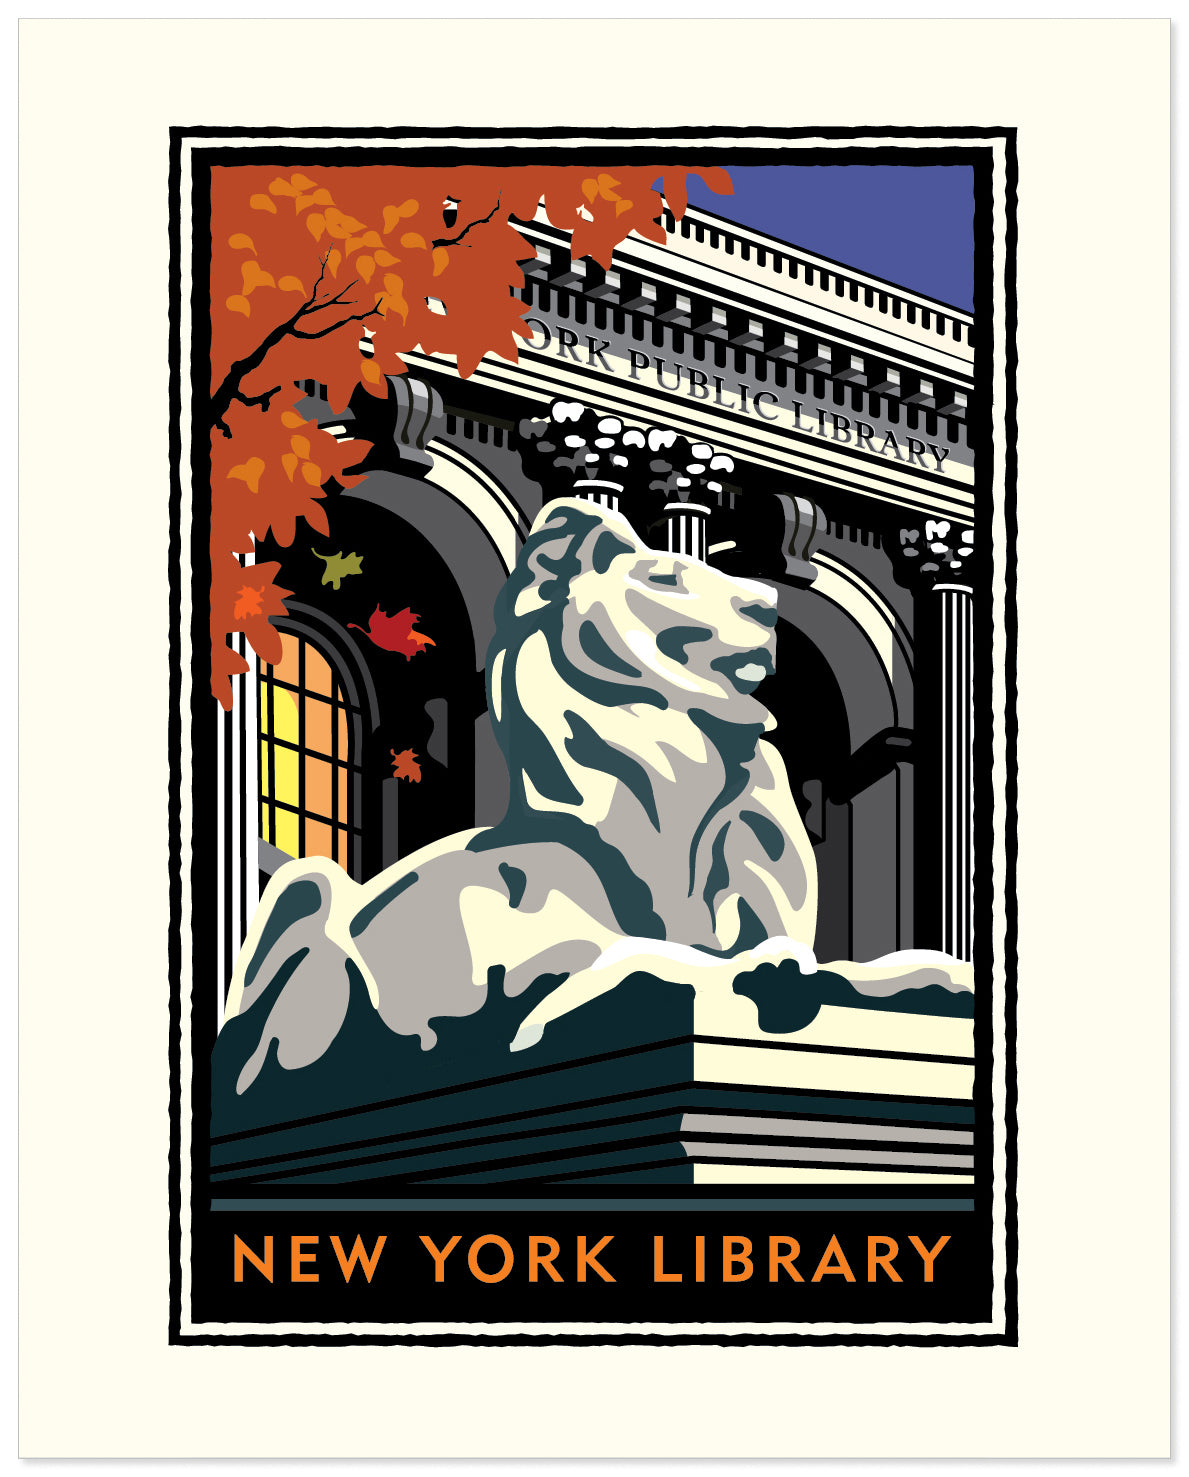 Landmark NY | Public Library NYC